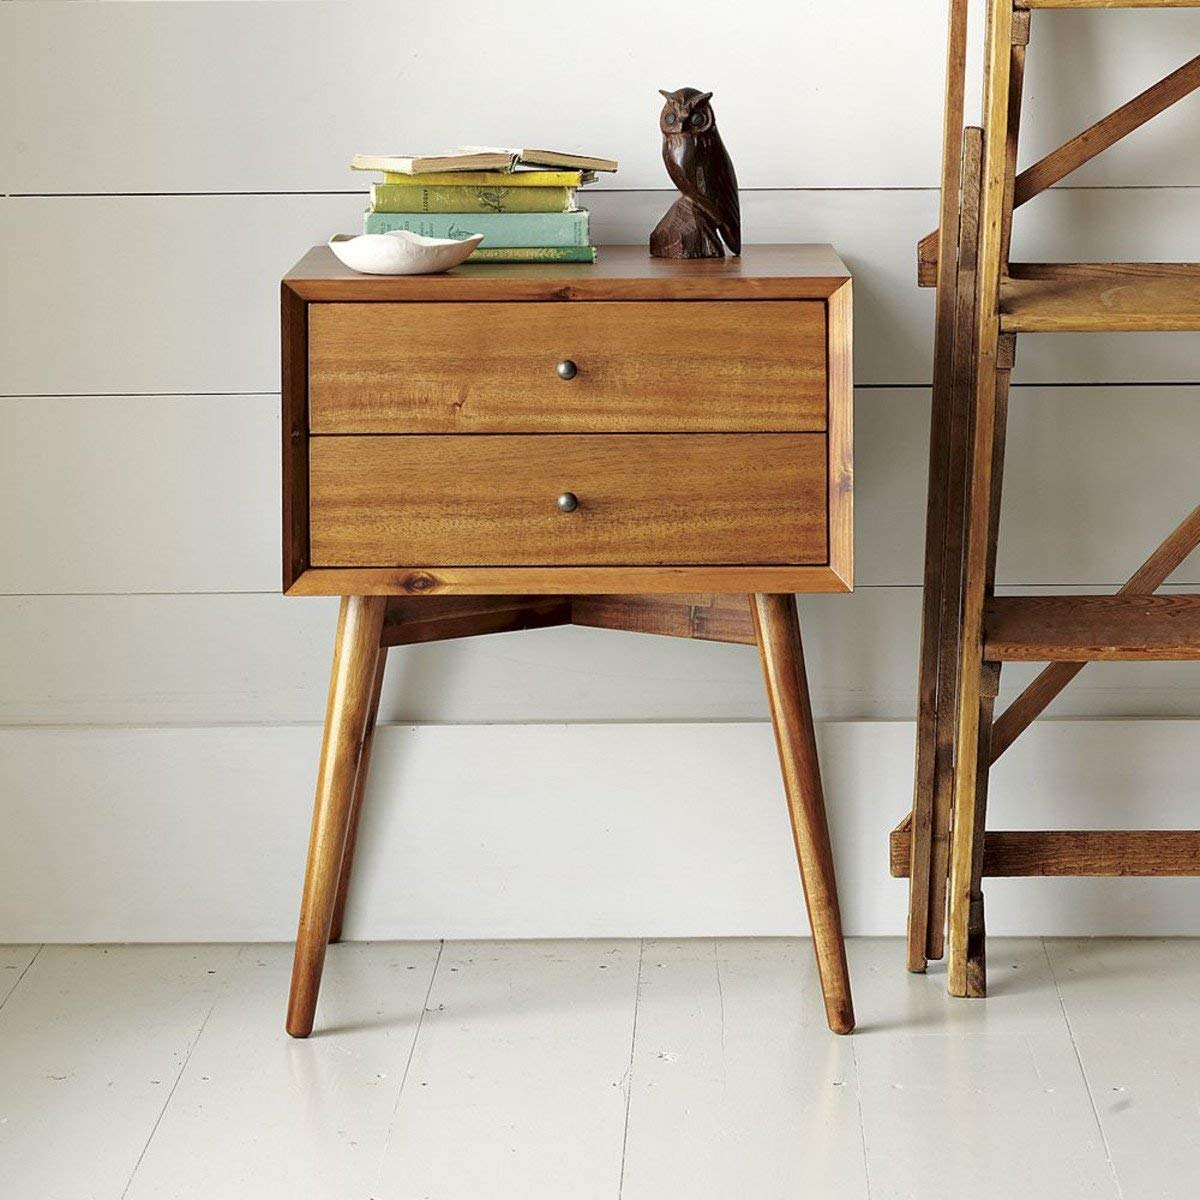 Laknot Wooden Bedside Table for Bedroom  2 Drawers Storage  Natural Finish